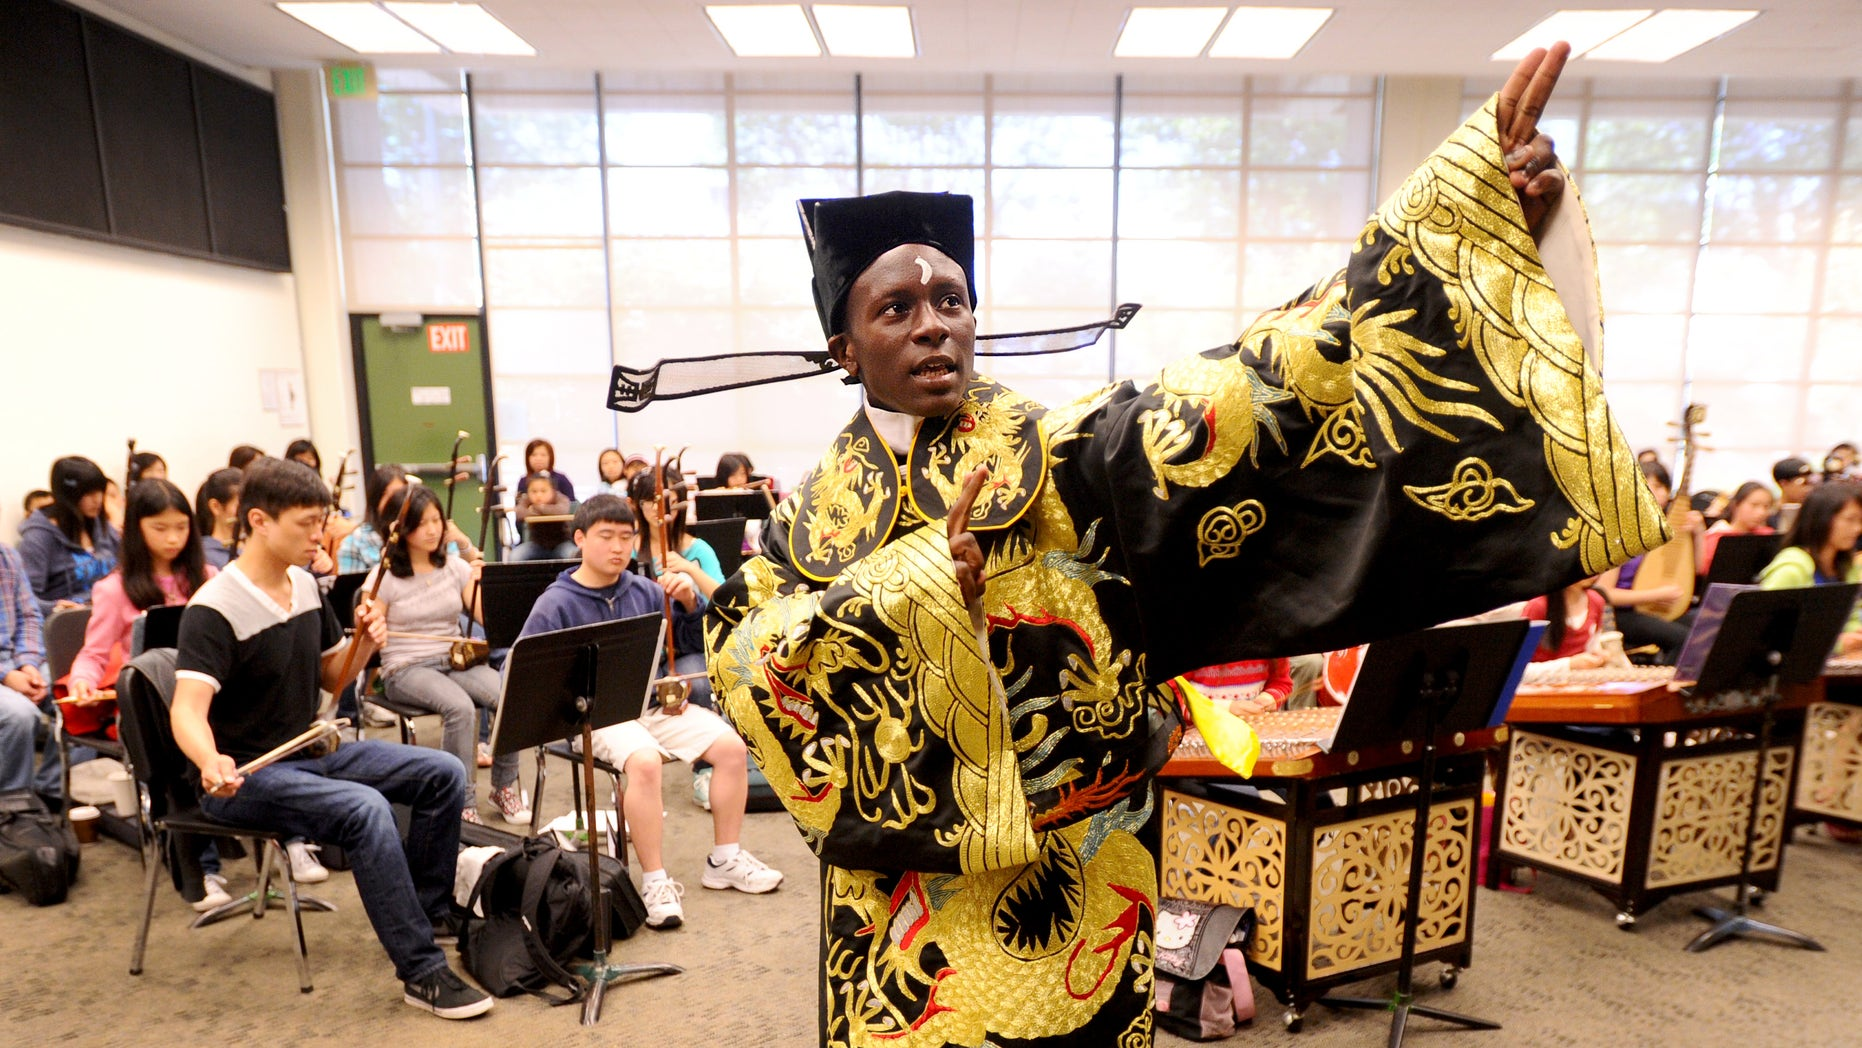 June 11: Tyler Thompson rehearses with the Great Wall Youth Orchestra in Oakland, California. The 15-year-old Oakland native, who sings traditional Chinese opera in Mandarin, plans to perform in China this summer.